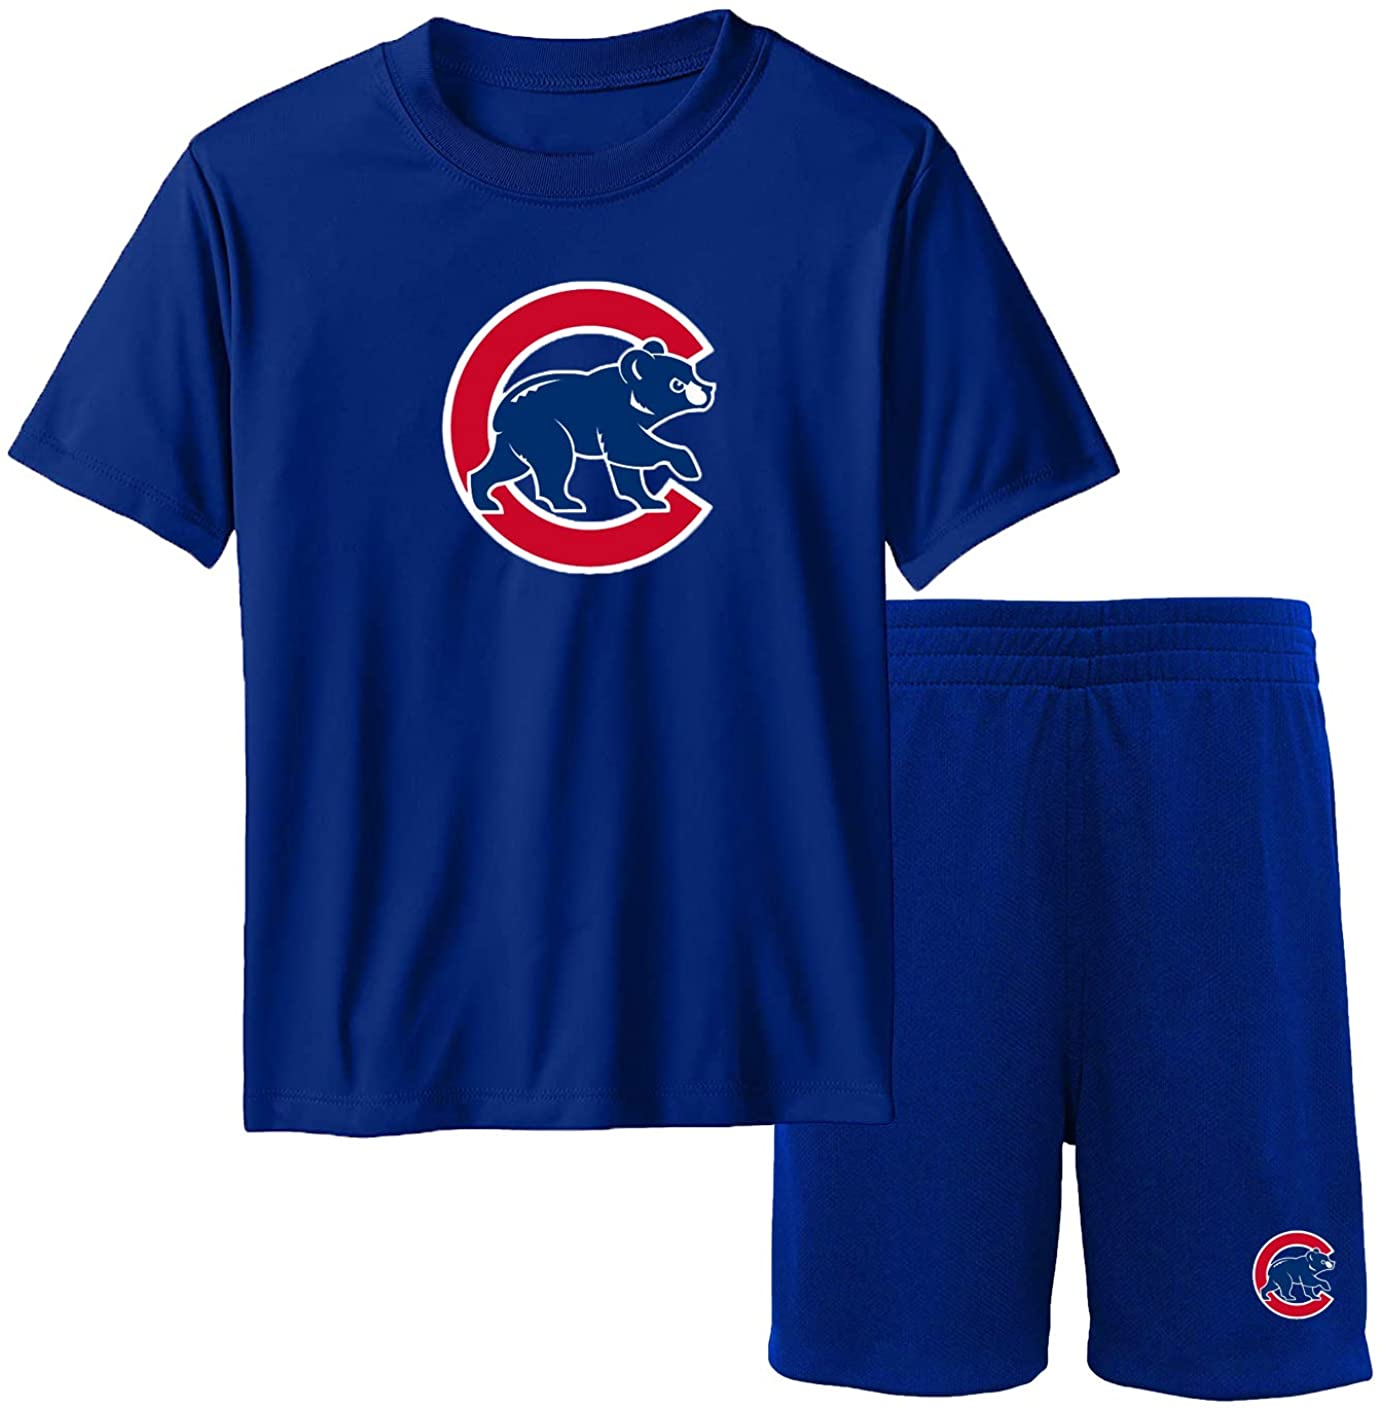 Outerstuff MLB Youth 8-20 Team Color Performance Primary Logo T-Shirt & Shorts Set